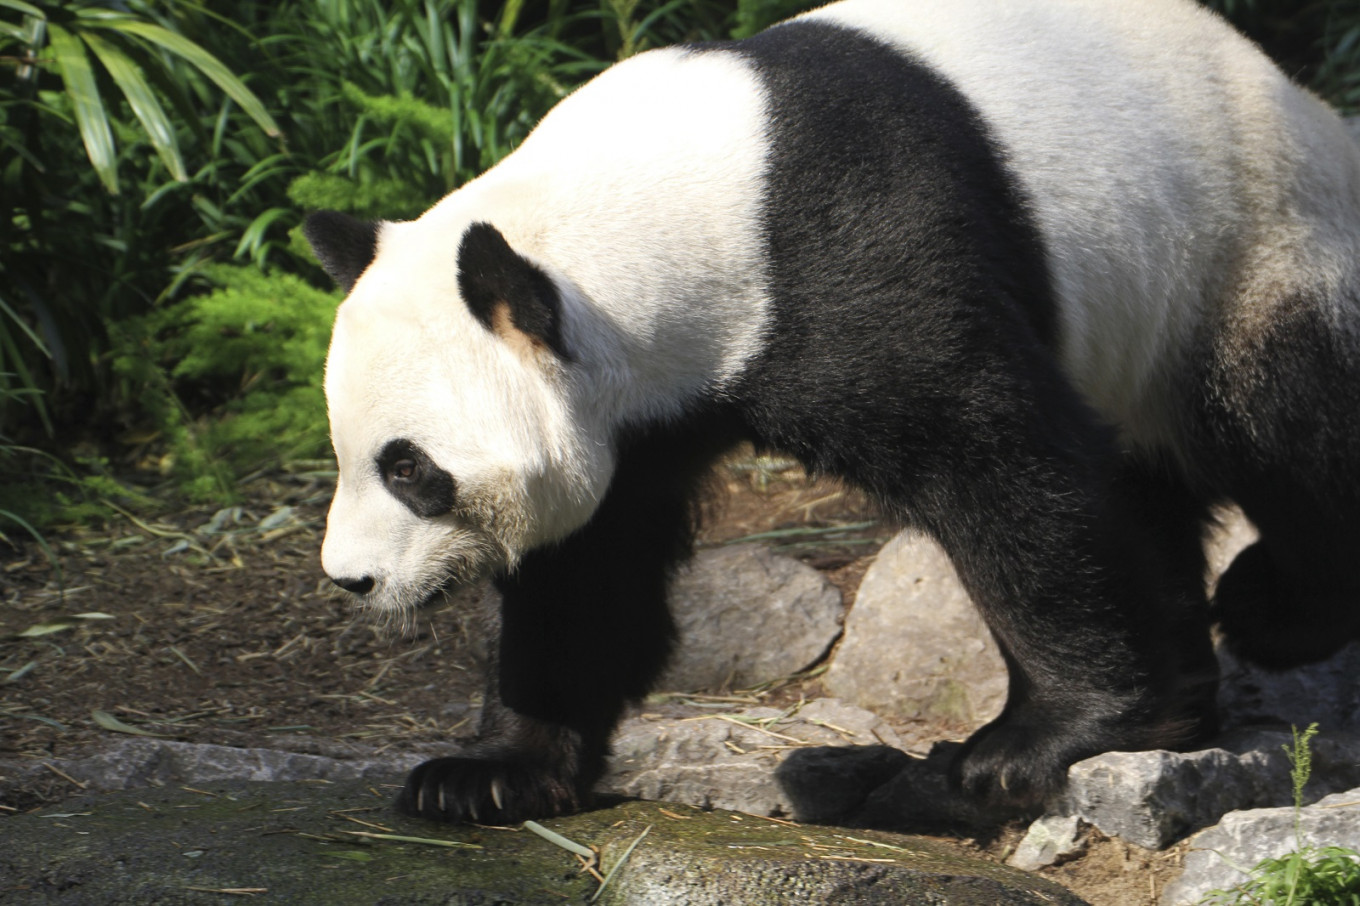 Canada zoo to send pandas home after bamboo shortage